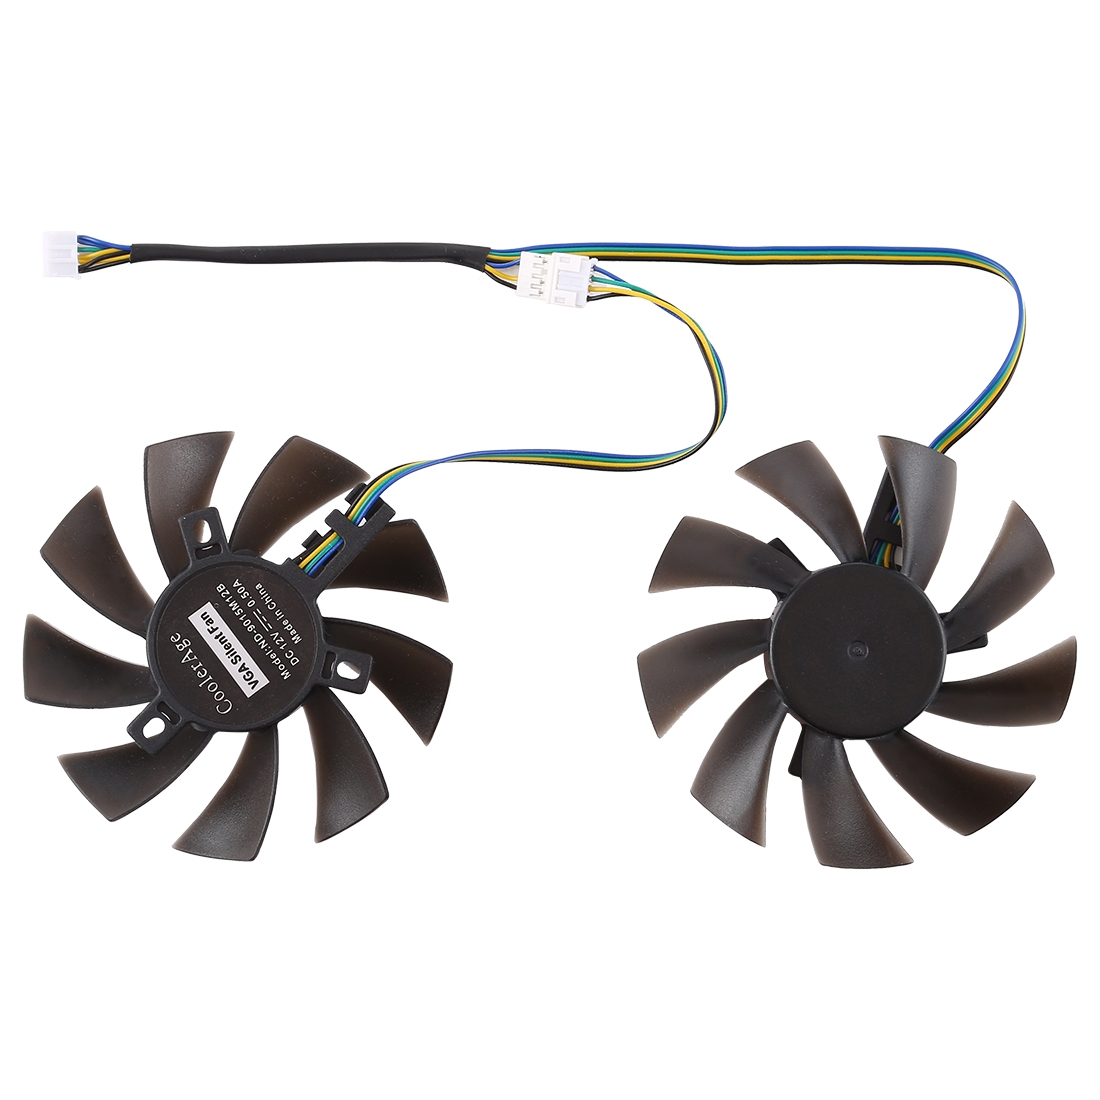 Strange Dc 12V 0 5A 4 Pin Female Desktop Computer Radiator Cooling Fan Cpu Cooling Fan Diameter 8 5Mm Pairs Beutiful Home Inspiration Aditmahrainfo